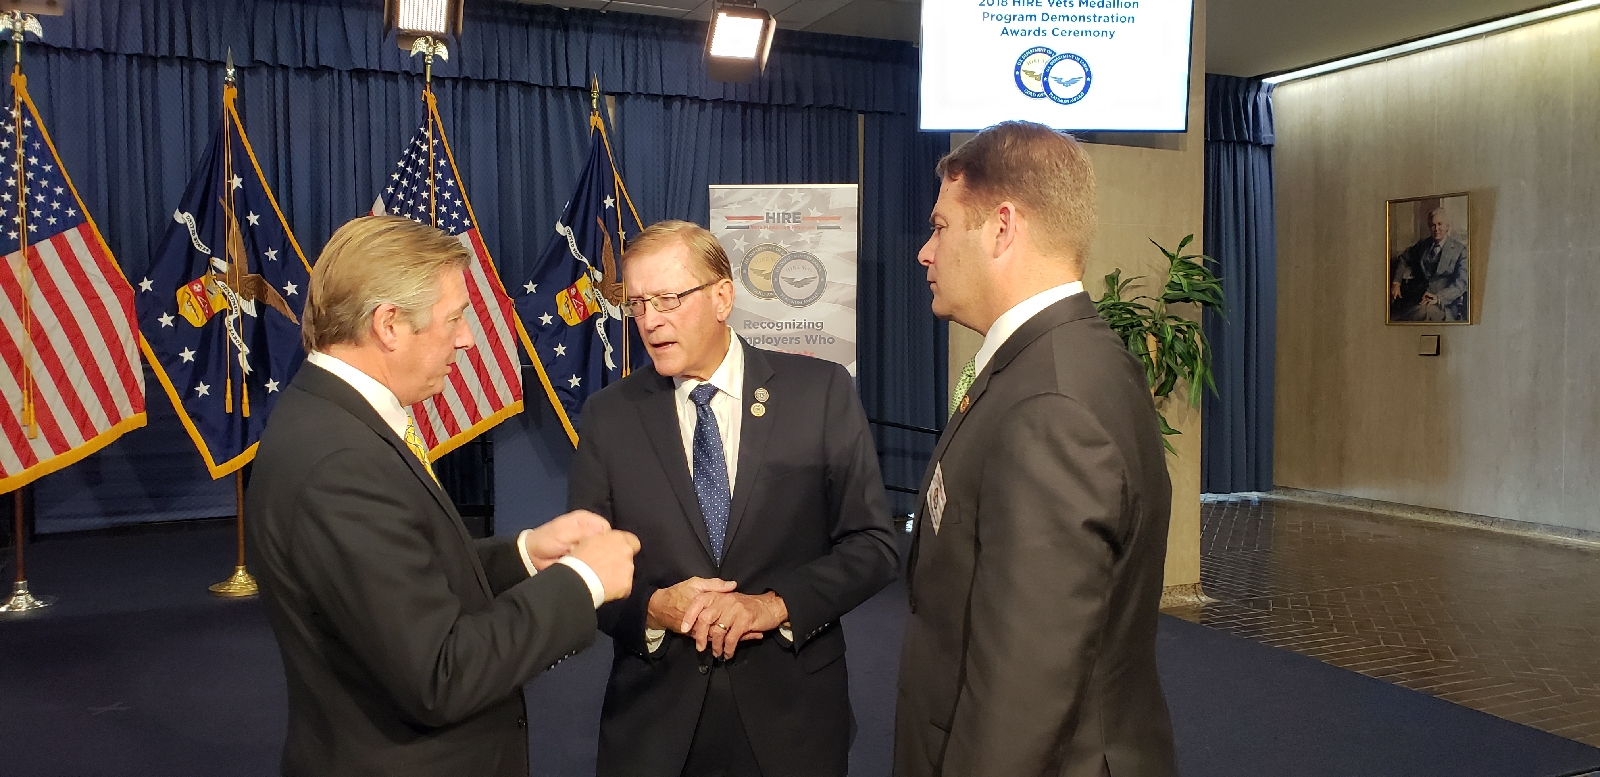 Rep. Paul Cook (R-Apple Valley) (center) discuss the HIRE Vets Award Program and its significance with FASTPORT's leadership present at the U.S. Department of Labor after being awarded the Gold Medallion for Veteran hiring.